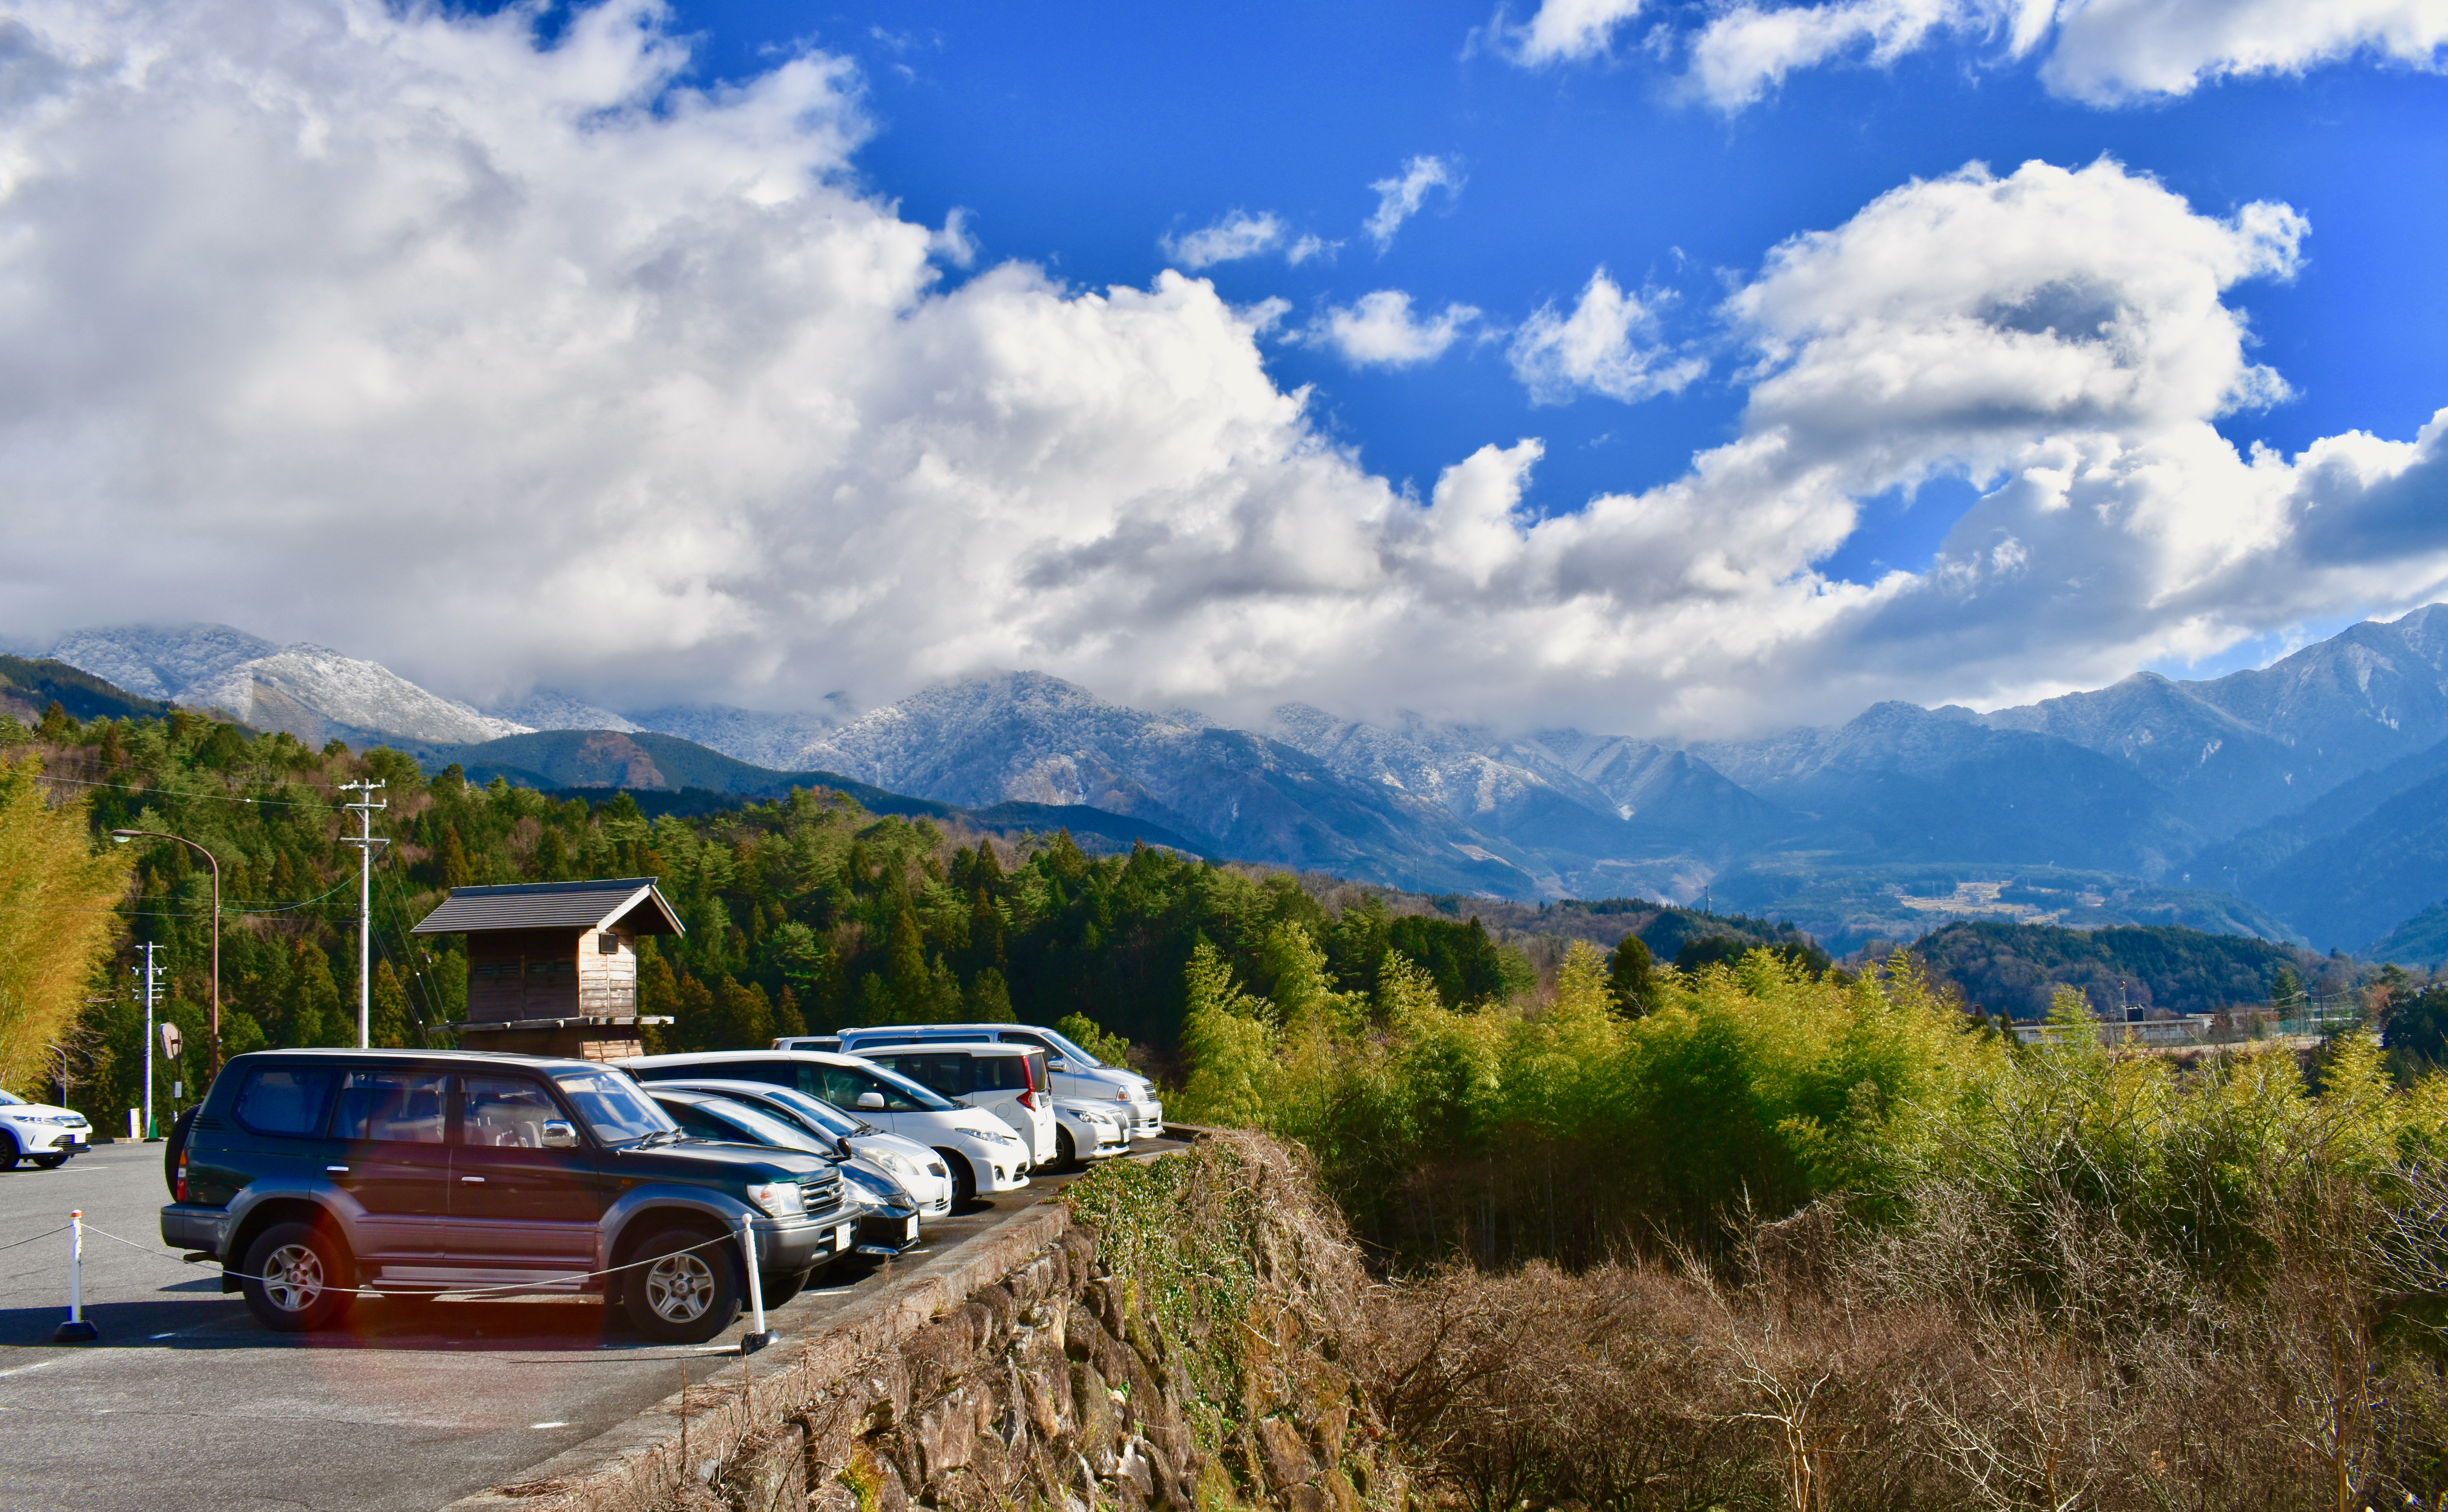 Top 10 Driving Spots in Minami-Shinshu : Delight in Nagano's wilderness, history, and gastronomic culture!